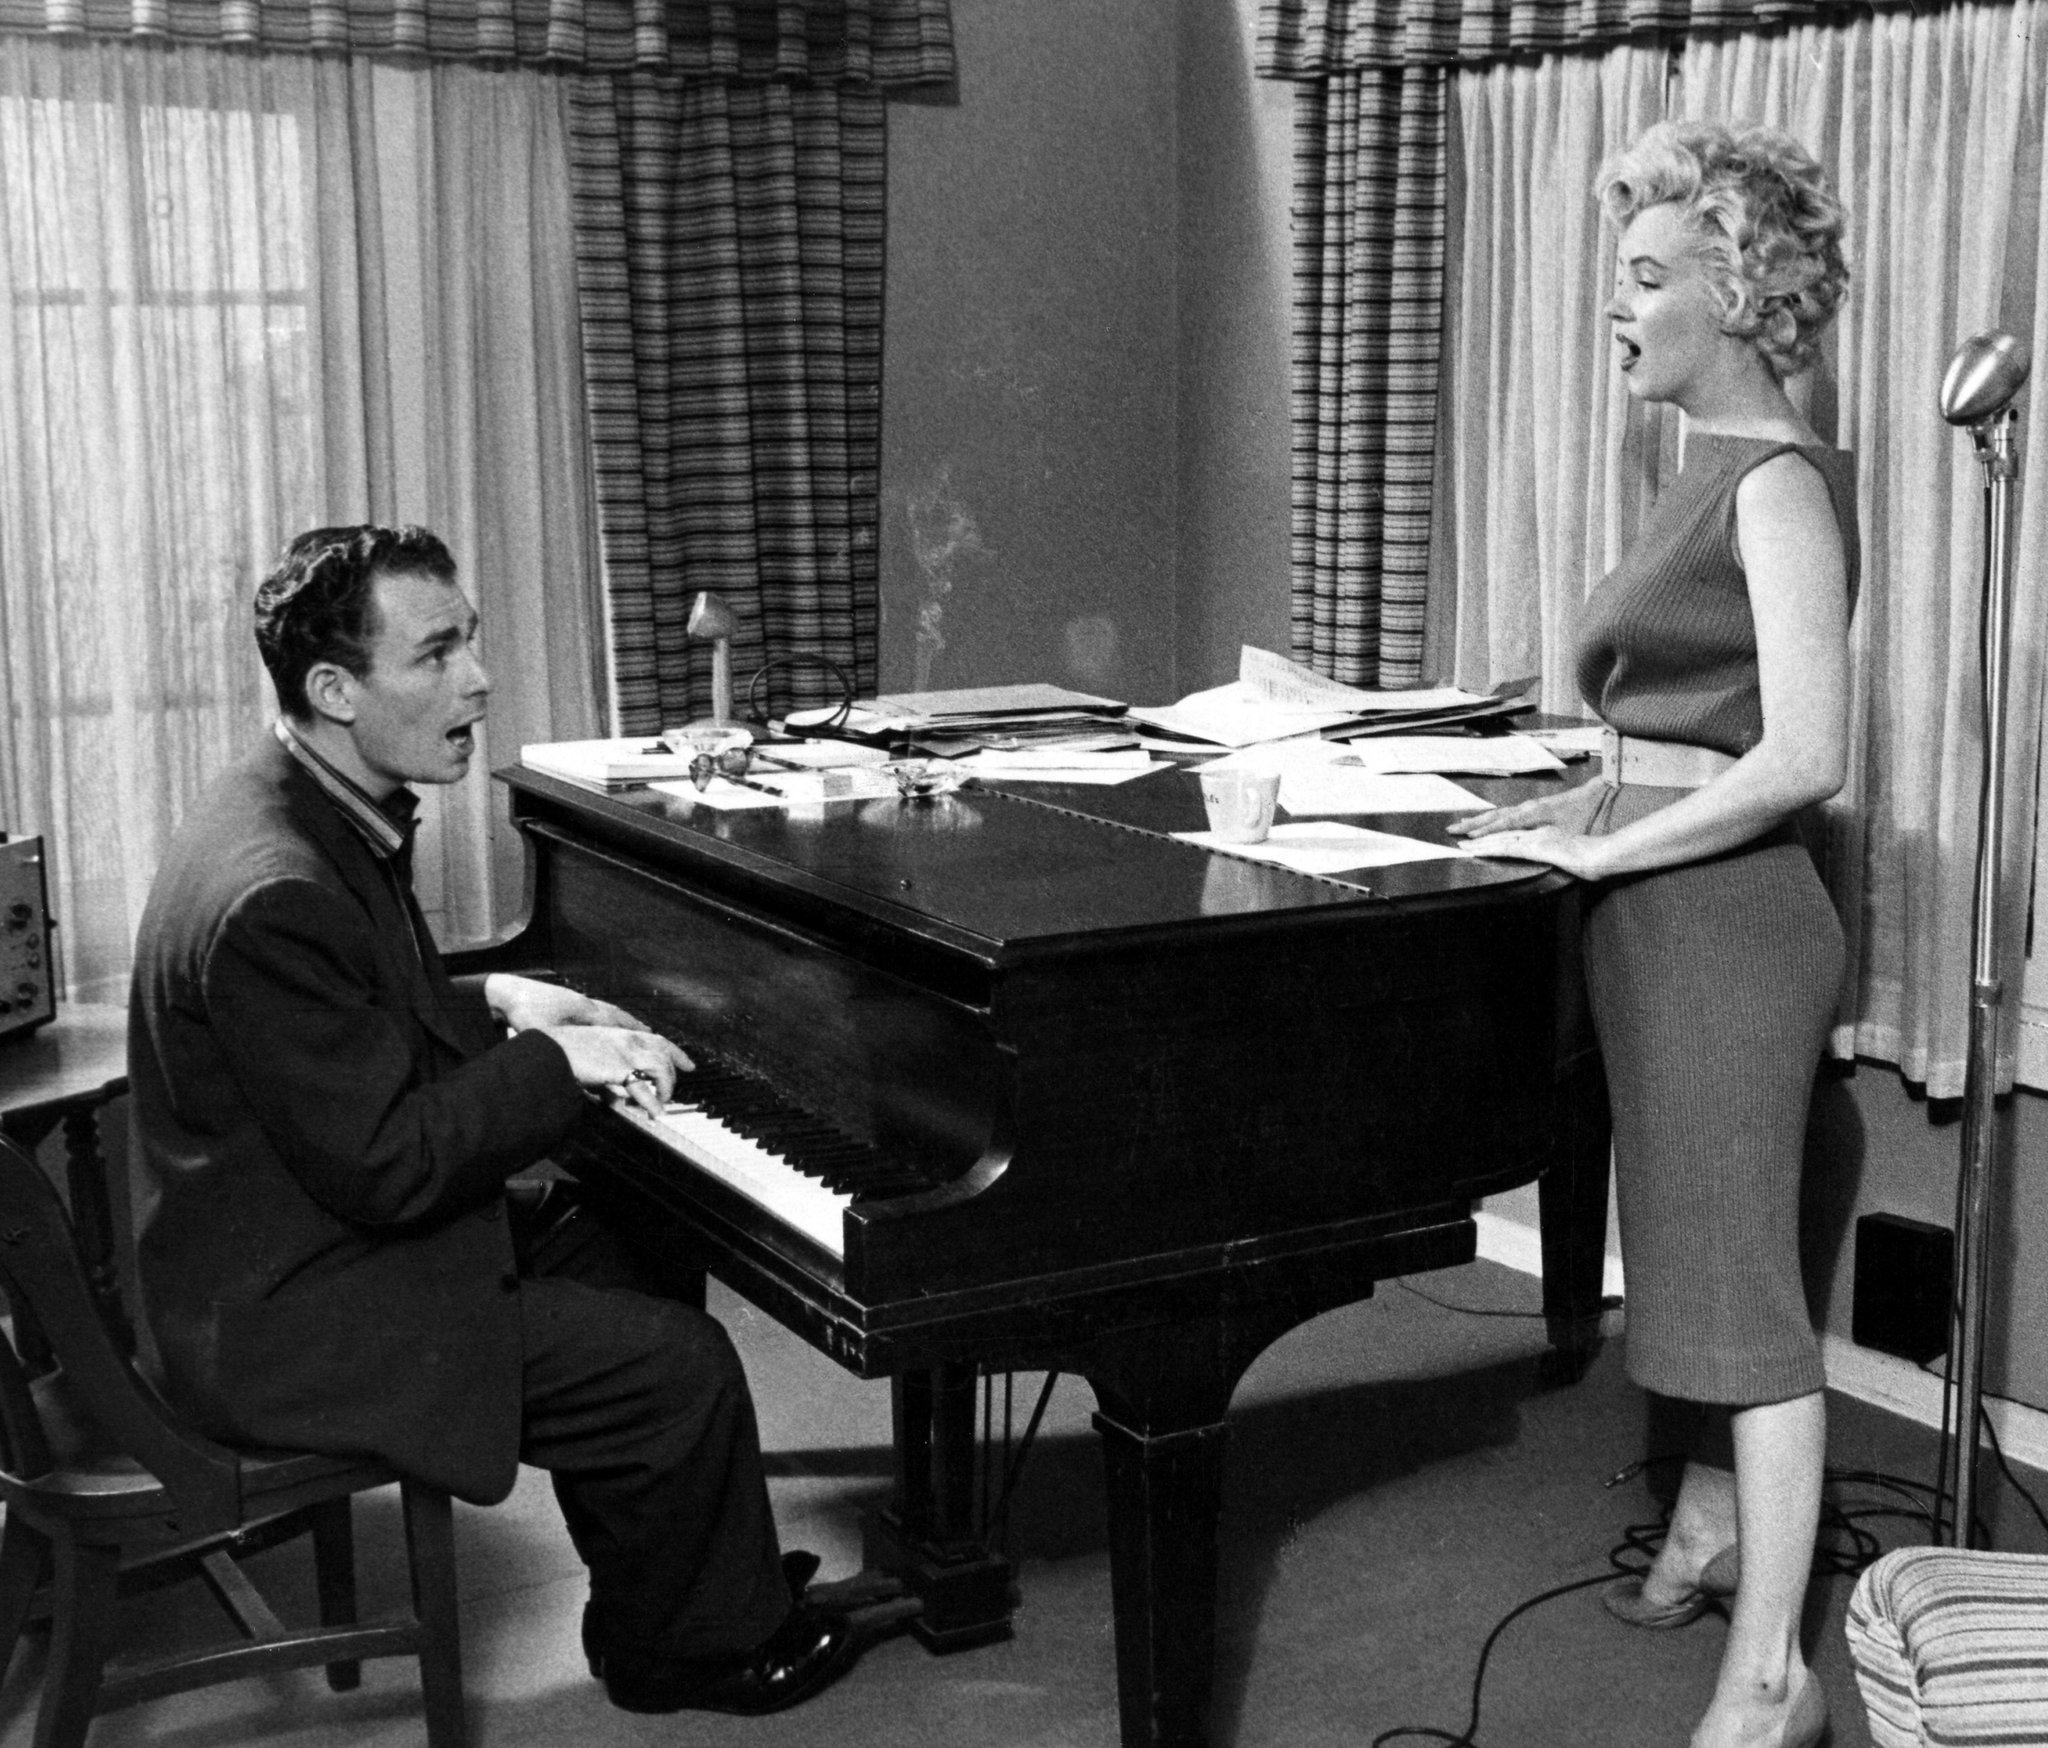 Hal Schaefer Jazz Pianist and Marilyn Monroes Vocal